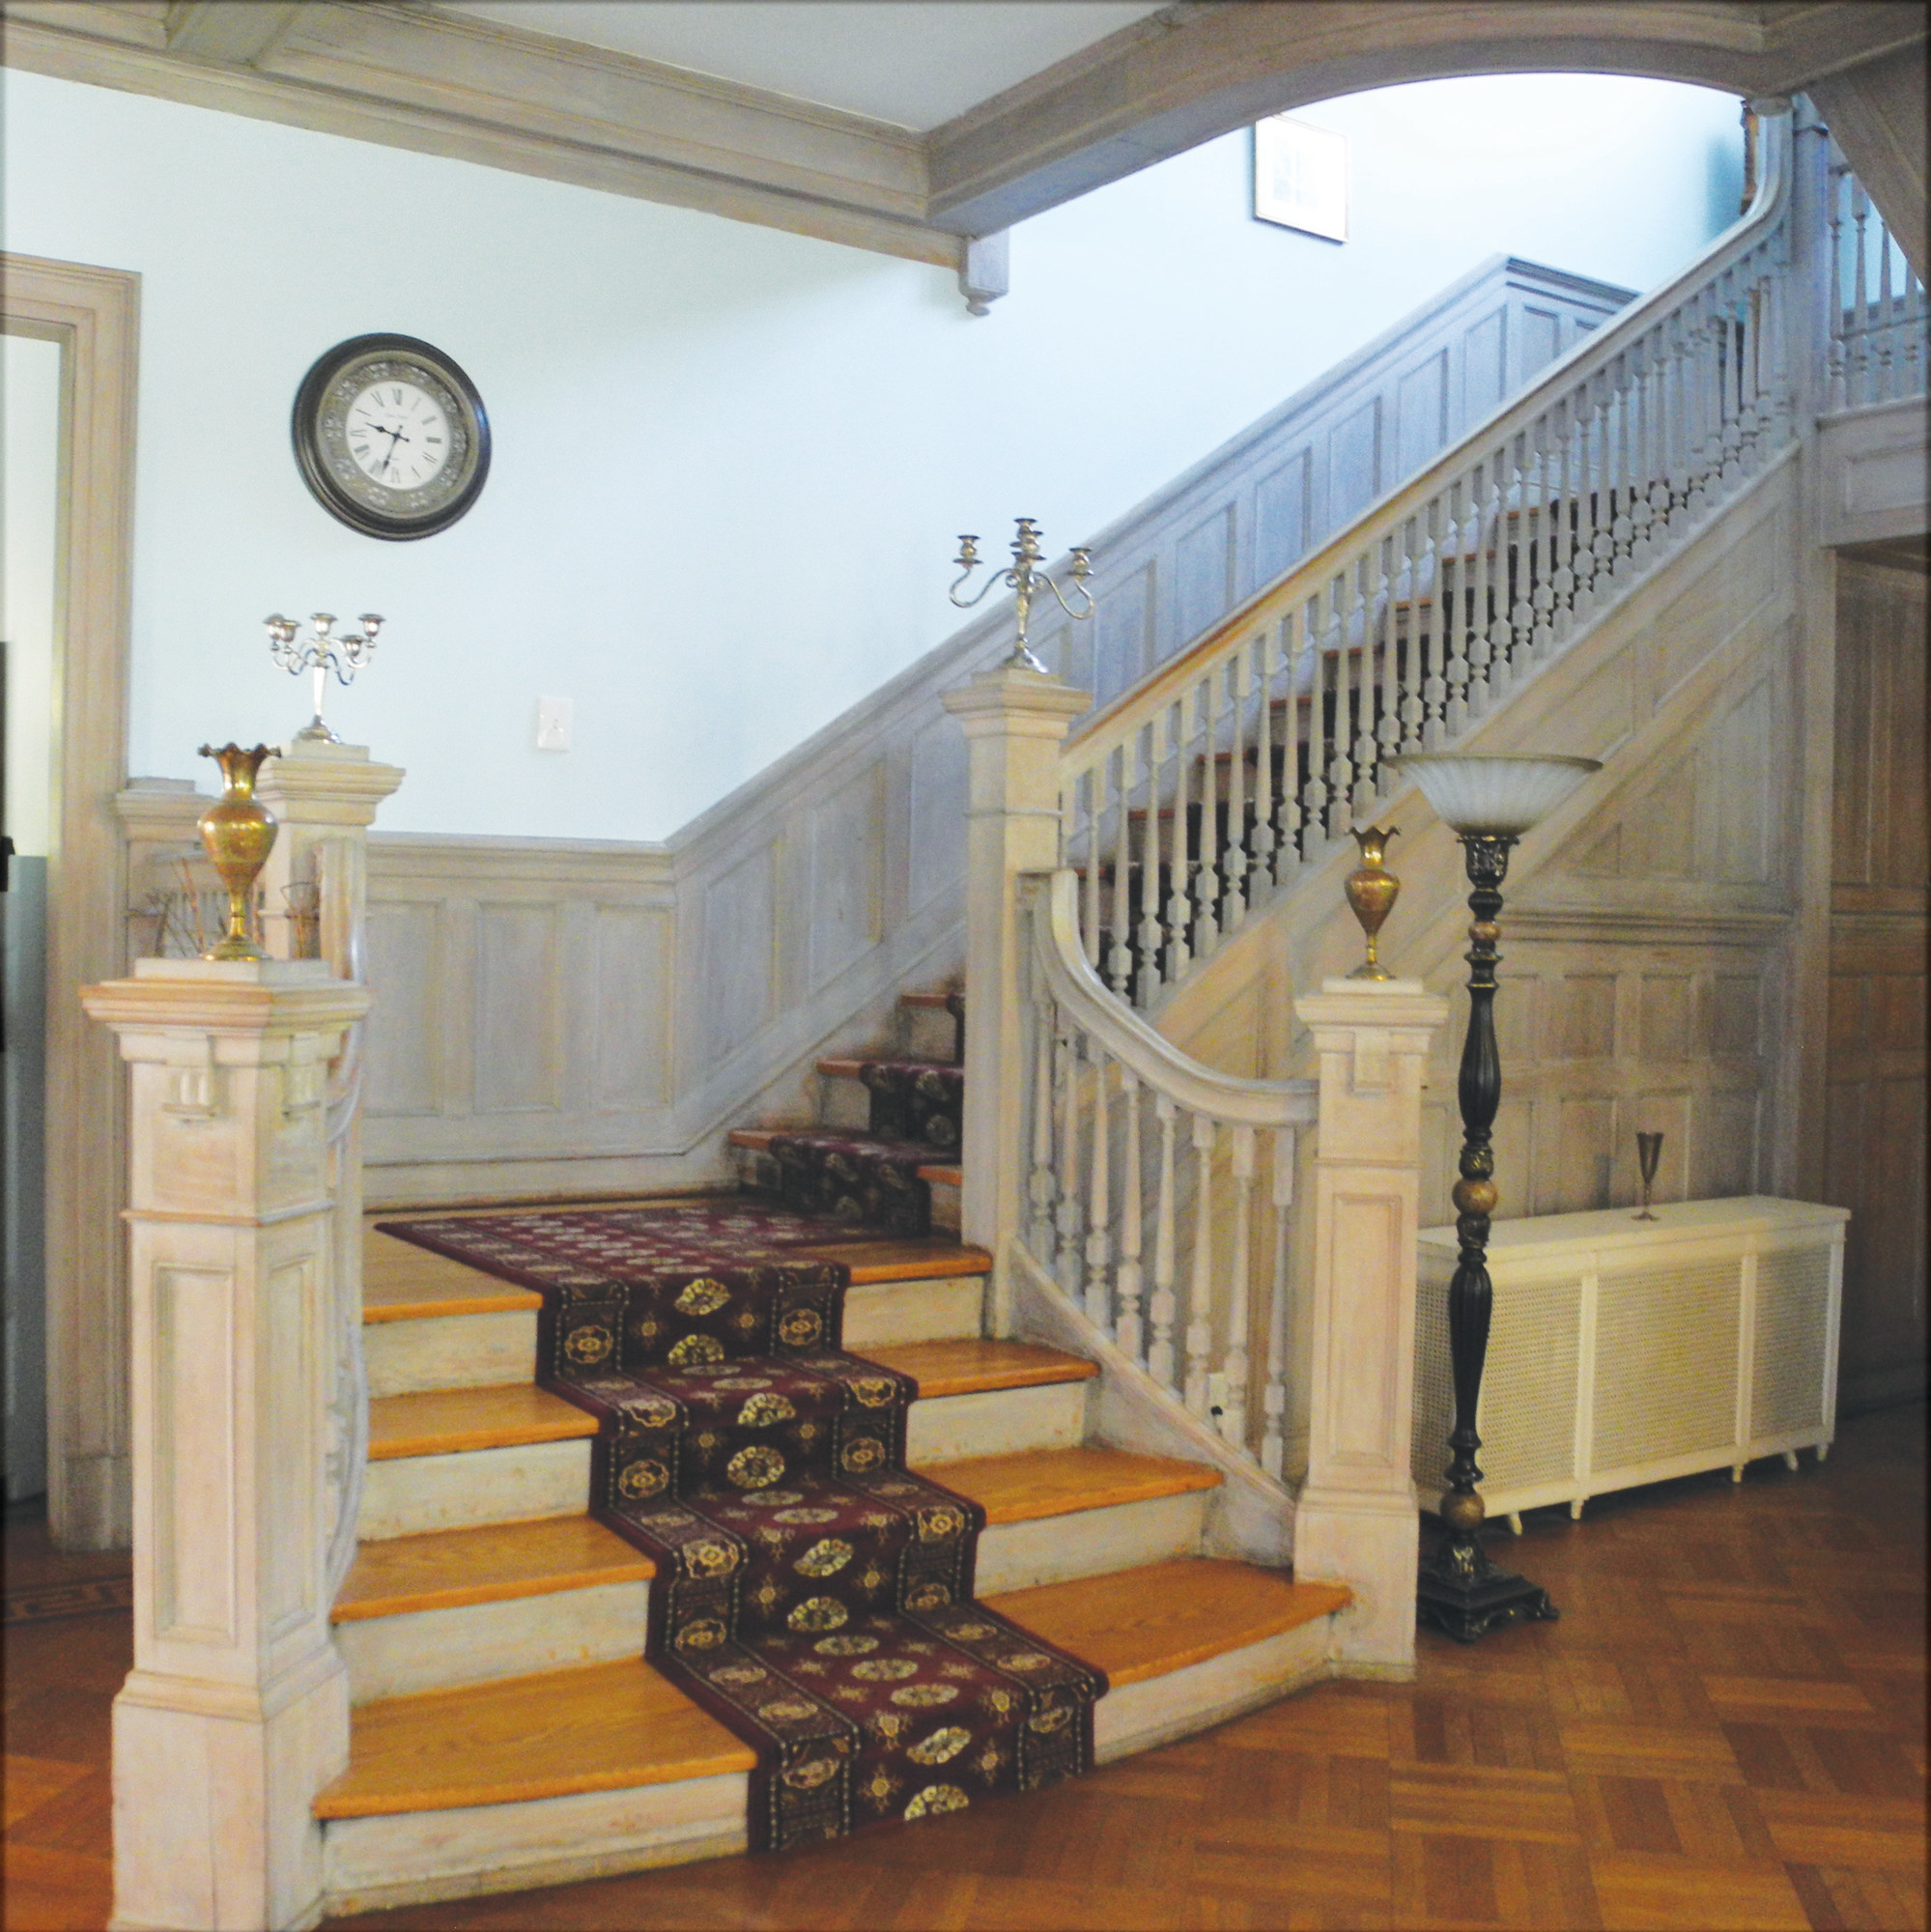 The first thing visitors are likely to notice upon entering 24 Warren St. is the staircase leading to the second floor, which overlooks the neighborhood.